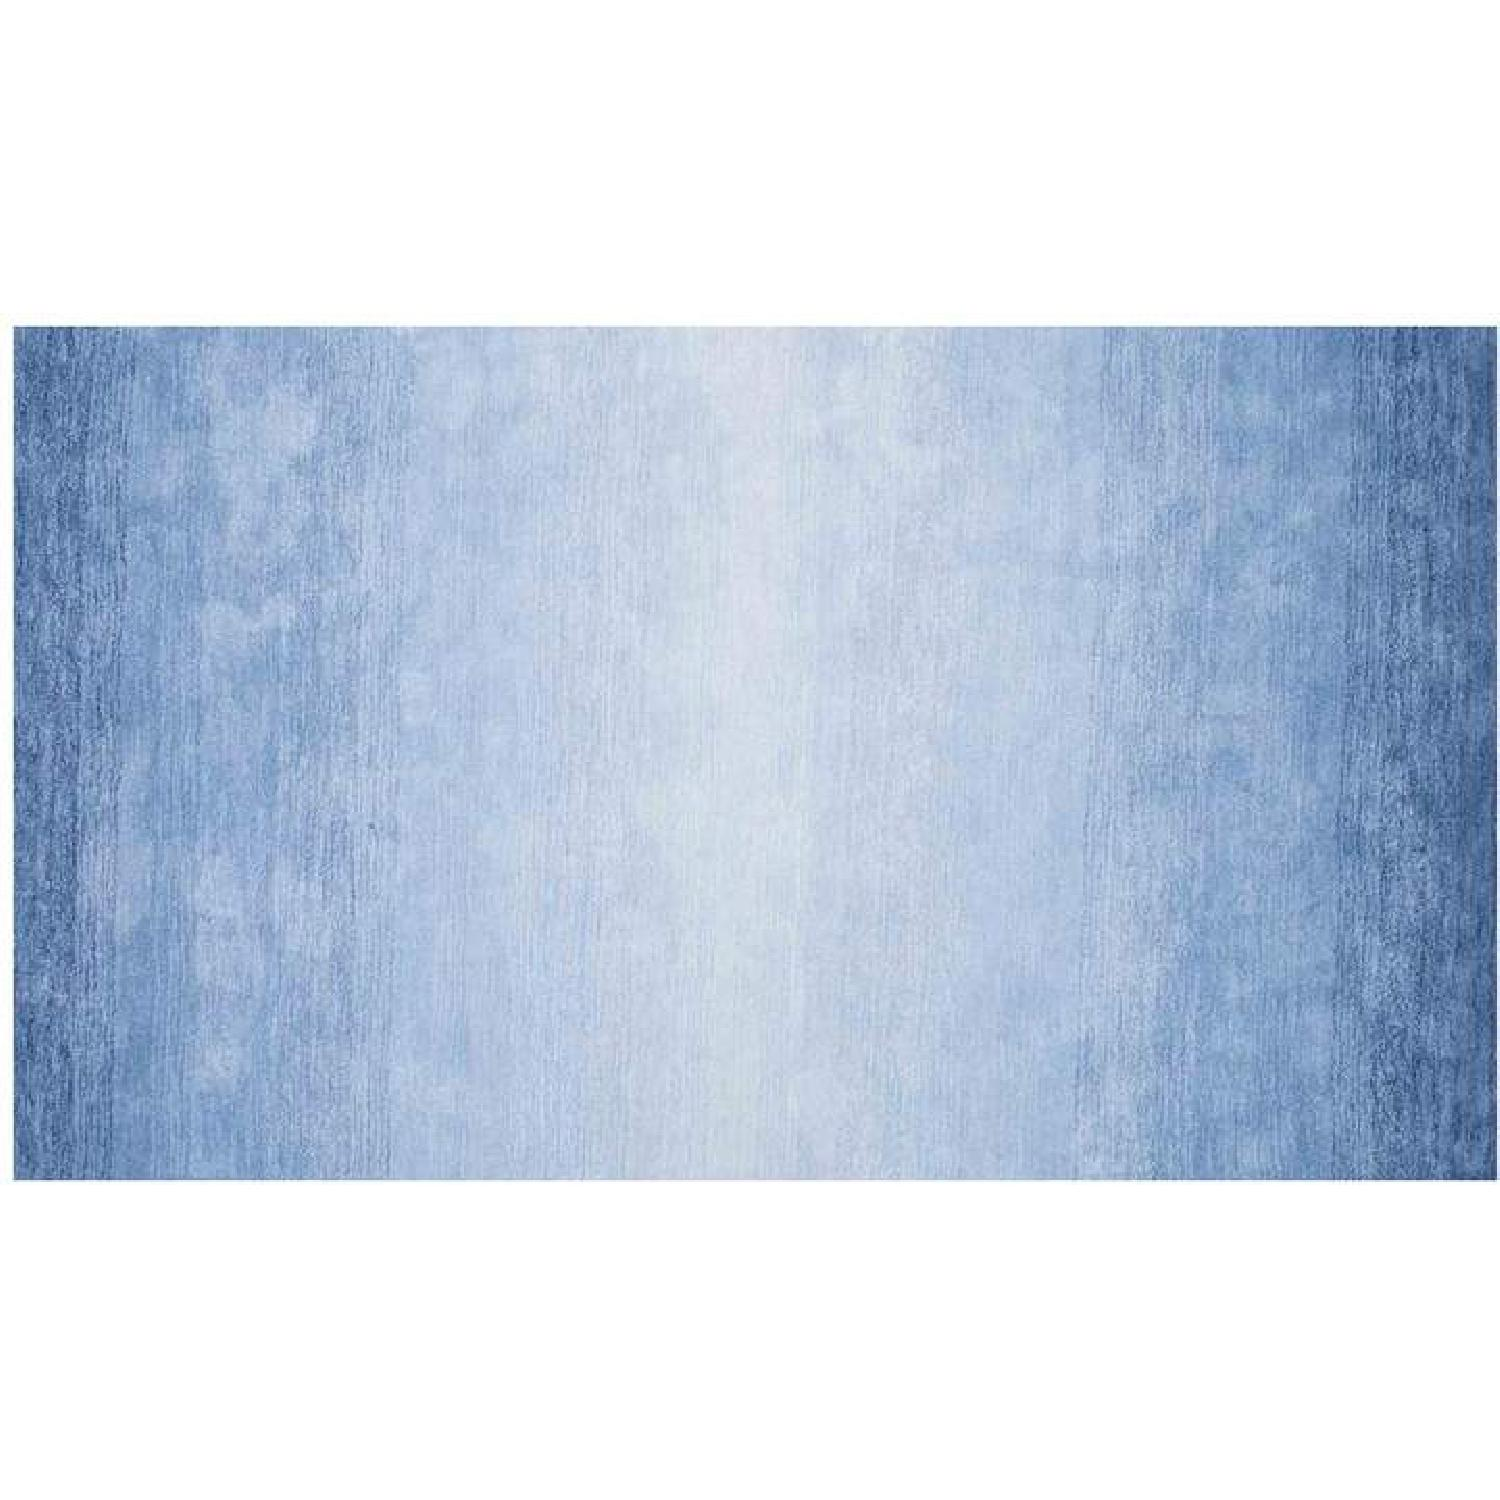 nuLOOM Ombre Abstract Rug in Blue - image-0